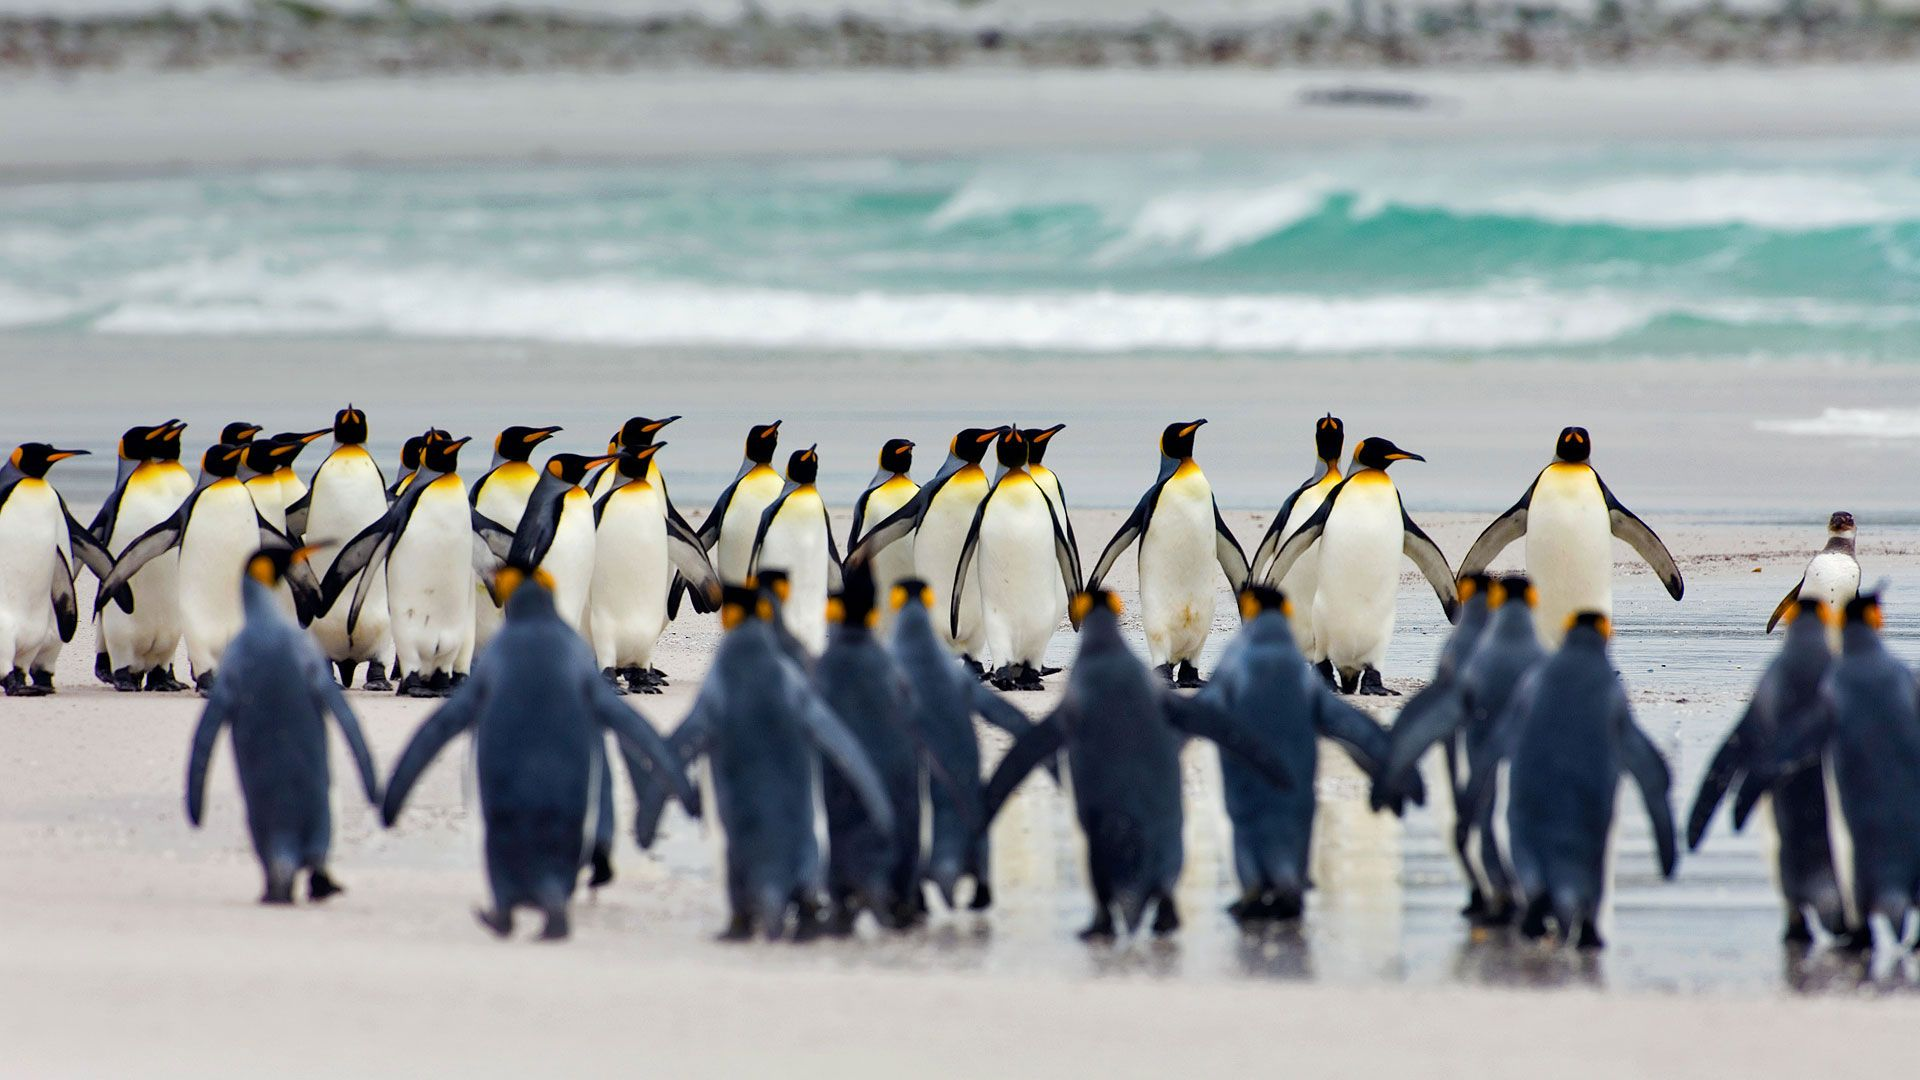 King Penguins are endangered by warming seas